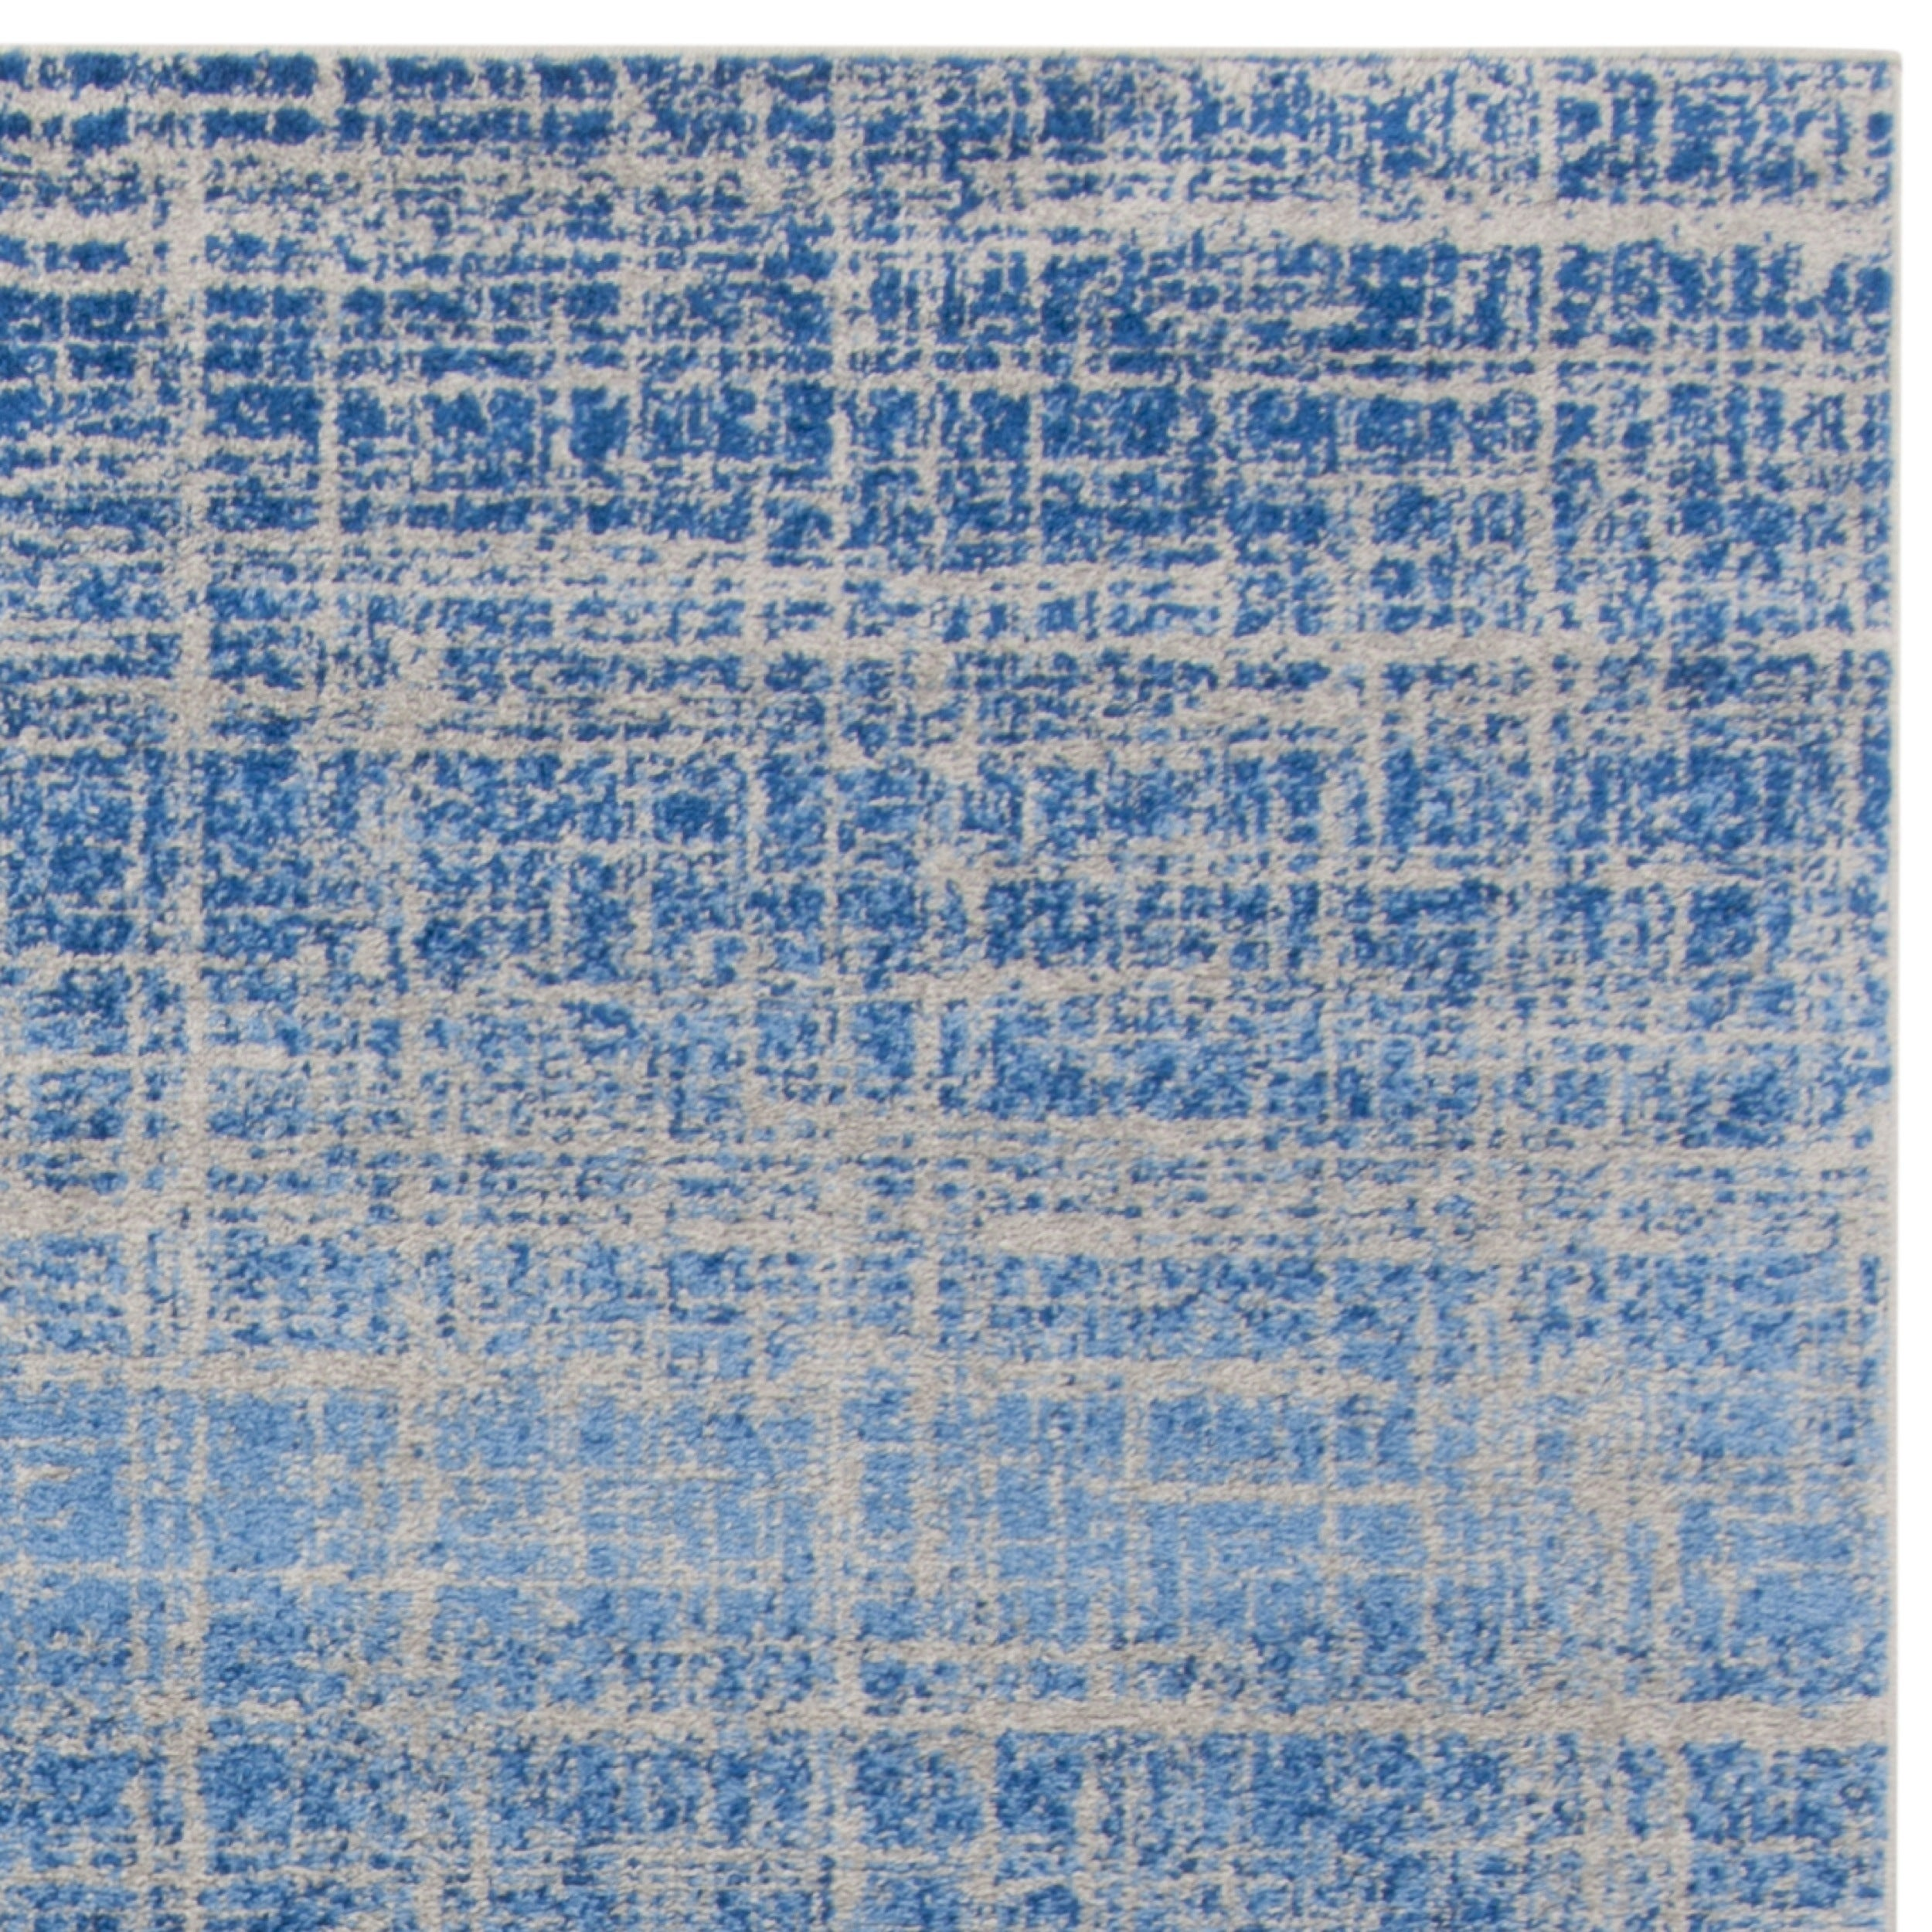 floor area capri patches shipping grey nit close australia rug stunning image free charcoal klein blue rugs modern